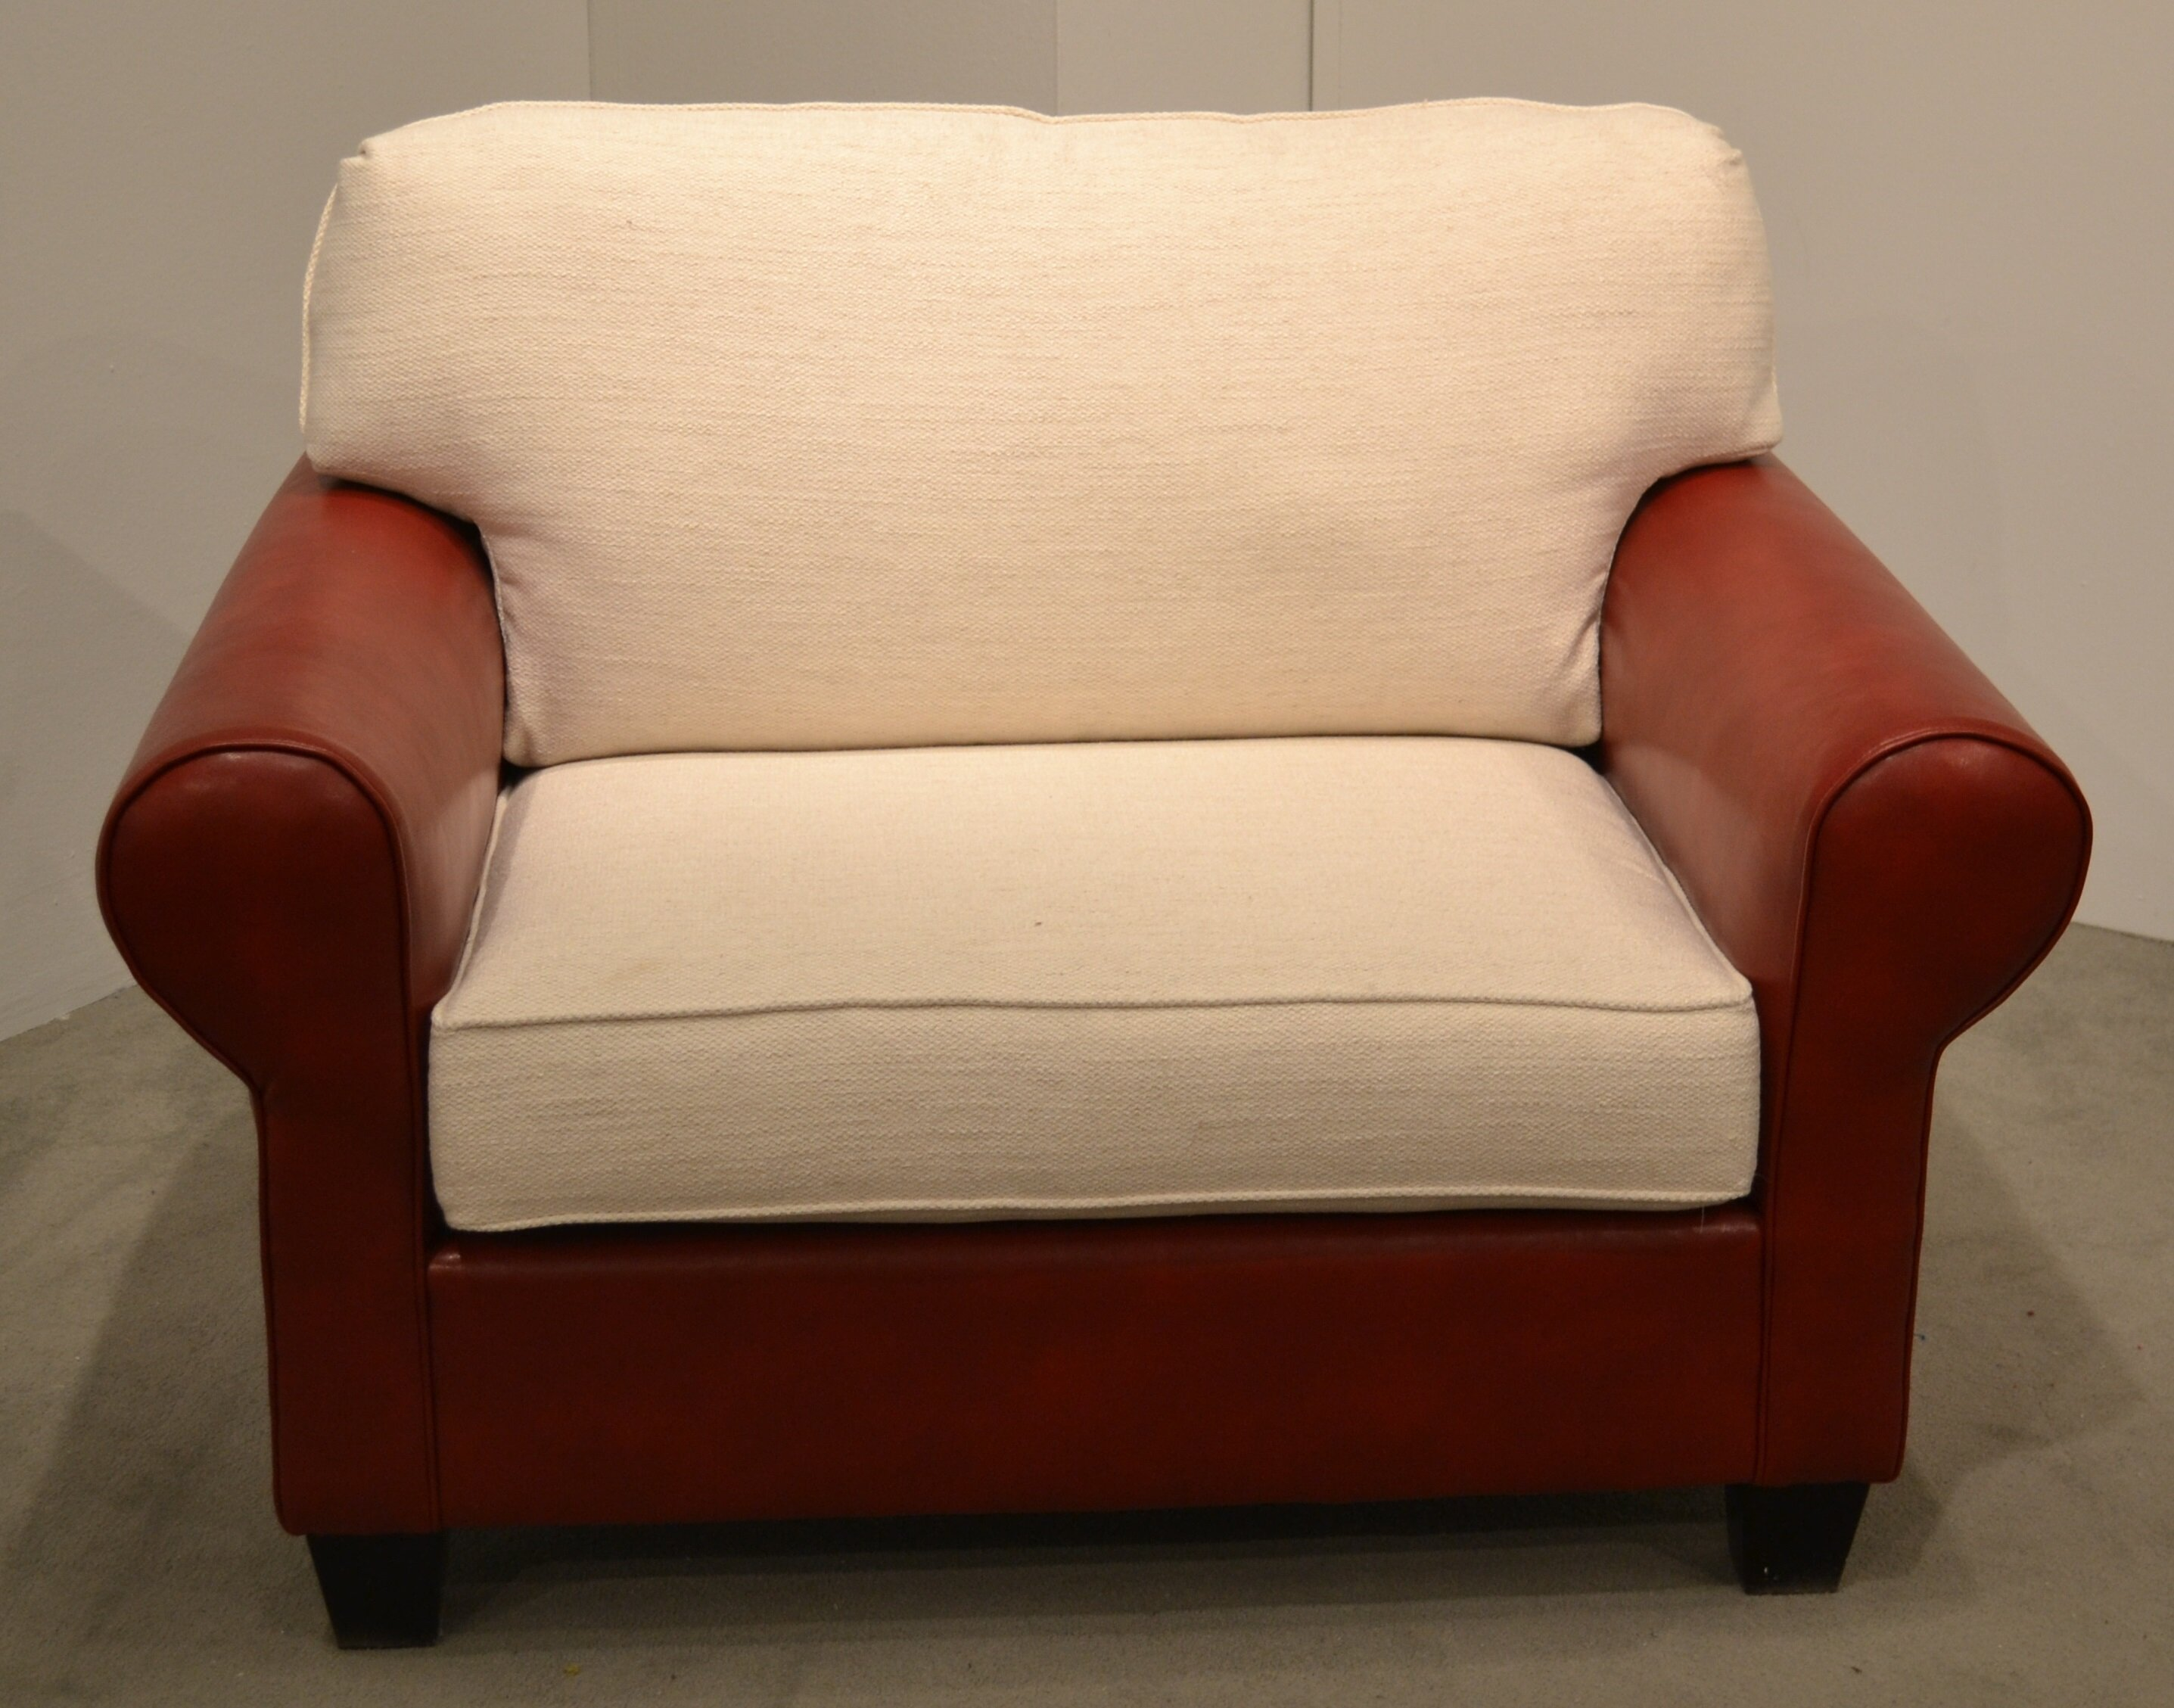 & Carolina Classic Furniture Leather and Fabric Chair and a Half | Wayfair